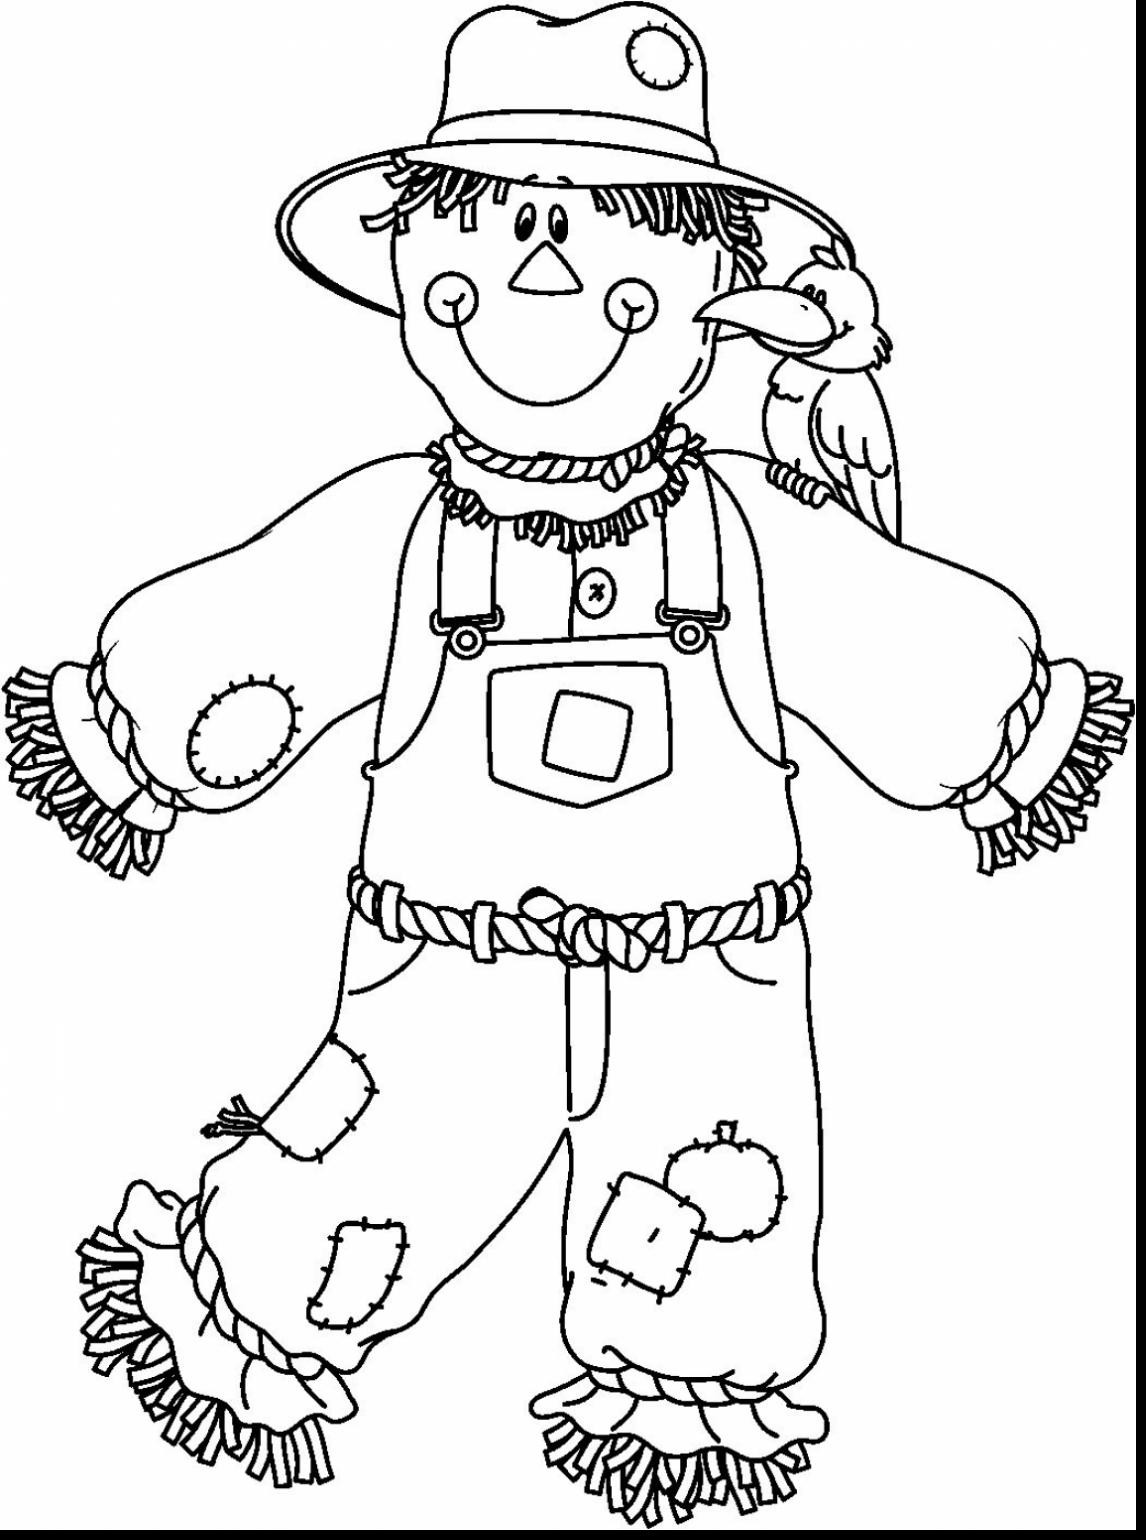 Free Printable Scarecrow Coloring Pages At Getcolorings